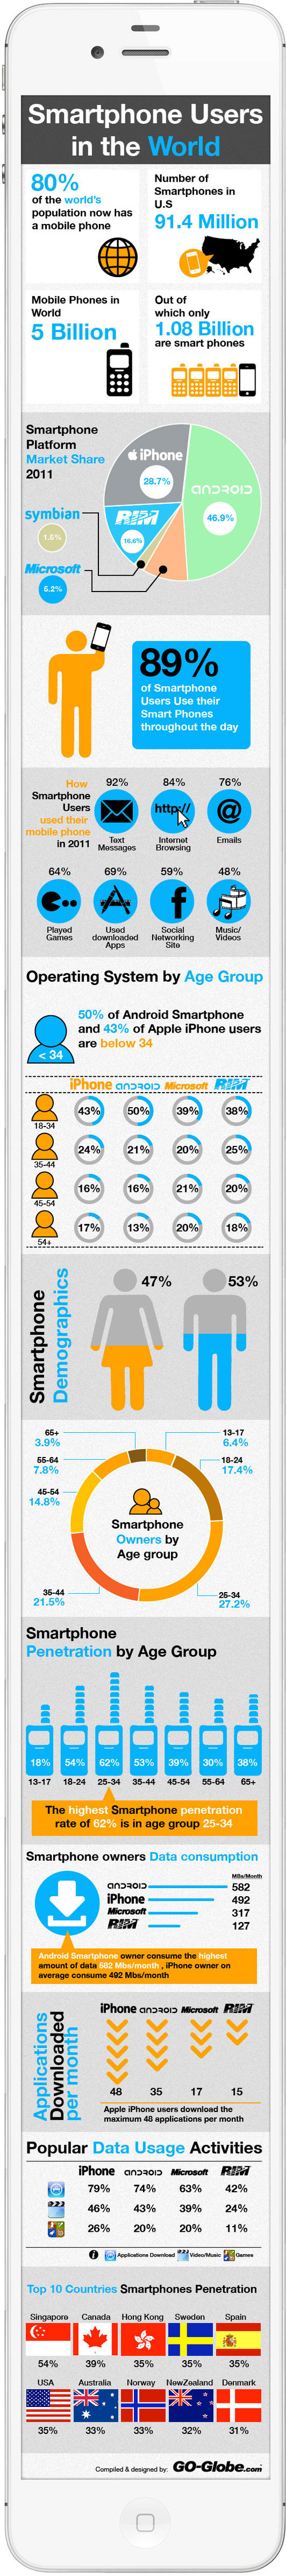 Infographic: Smartphone Users in the World